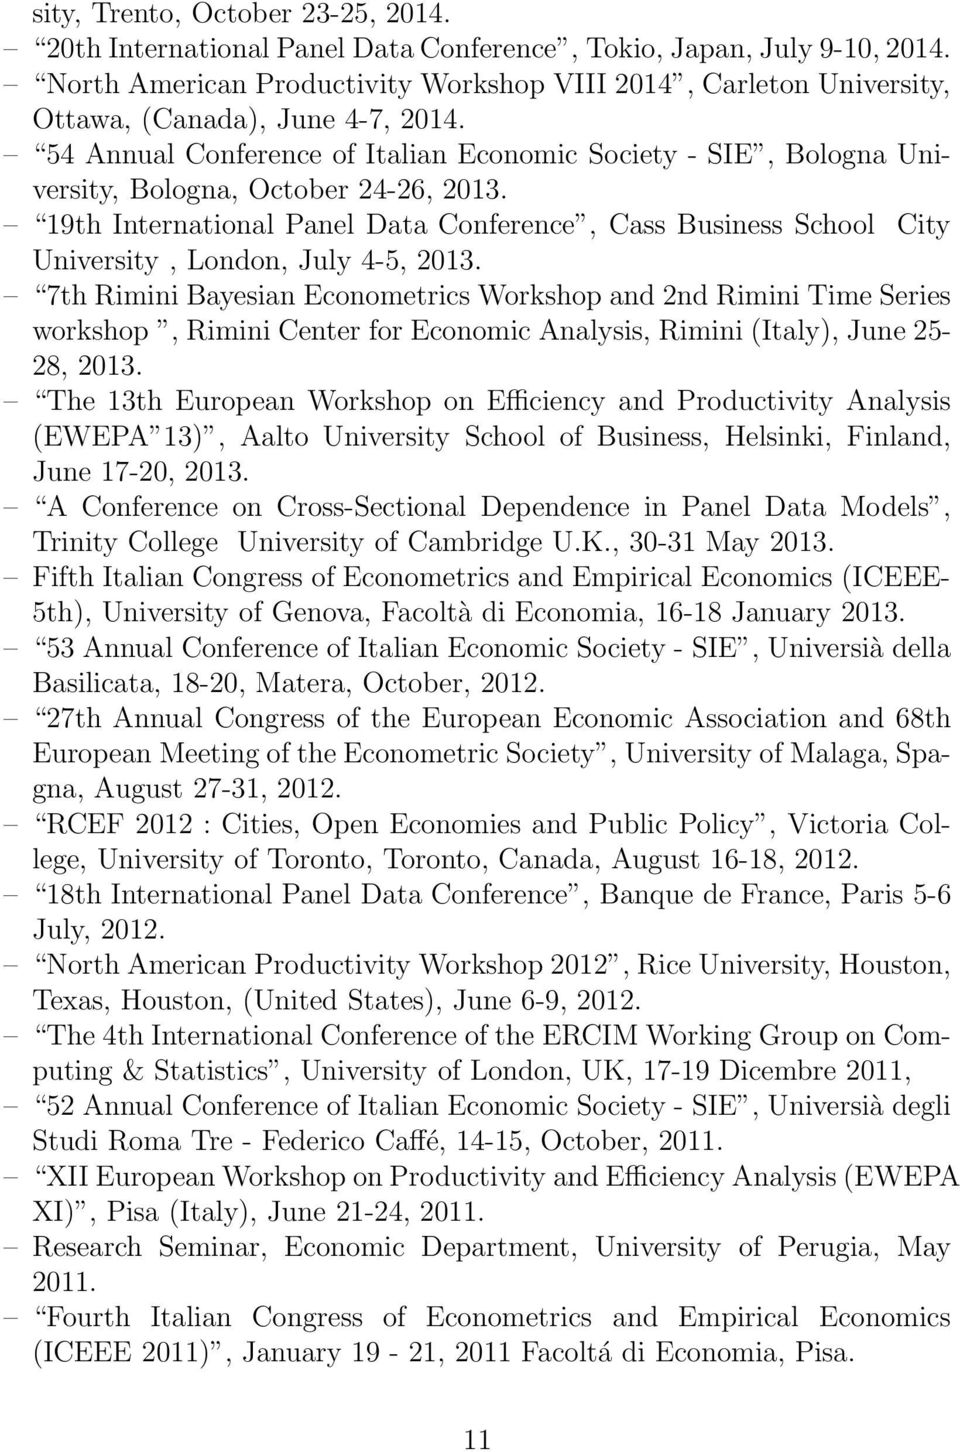 54 Annual Conference of Italian Economic Society - SIE, Bologna University, Bologna, October 24-26, 2013.